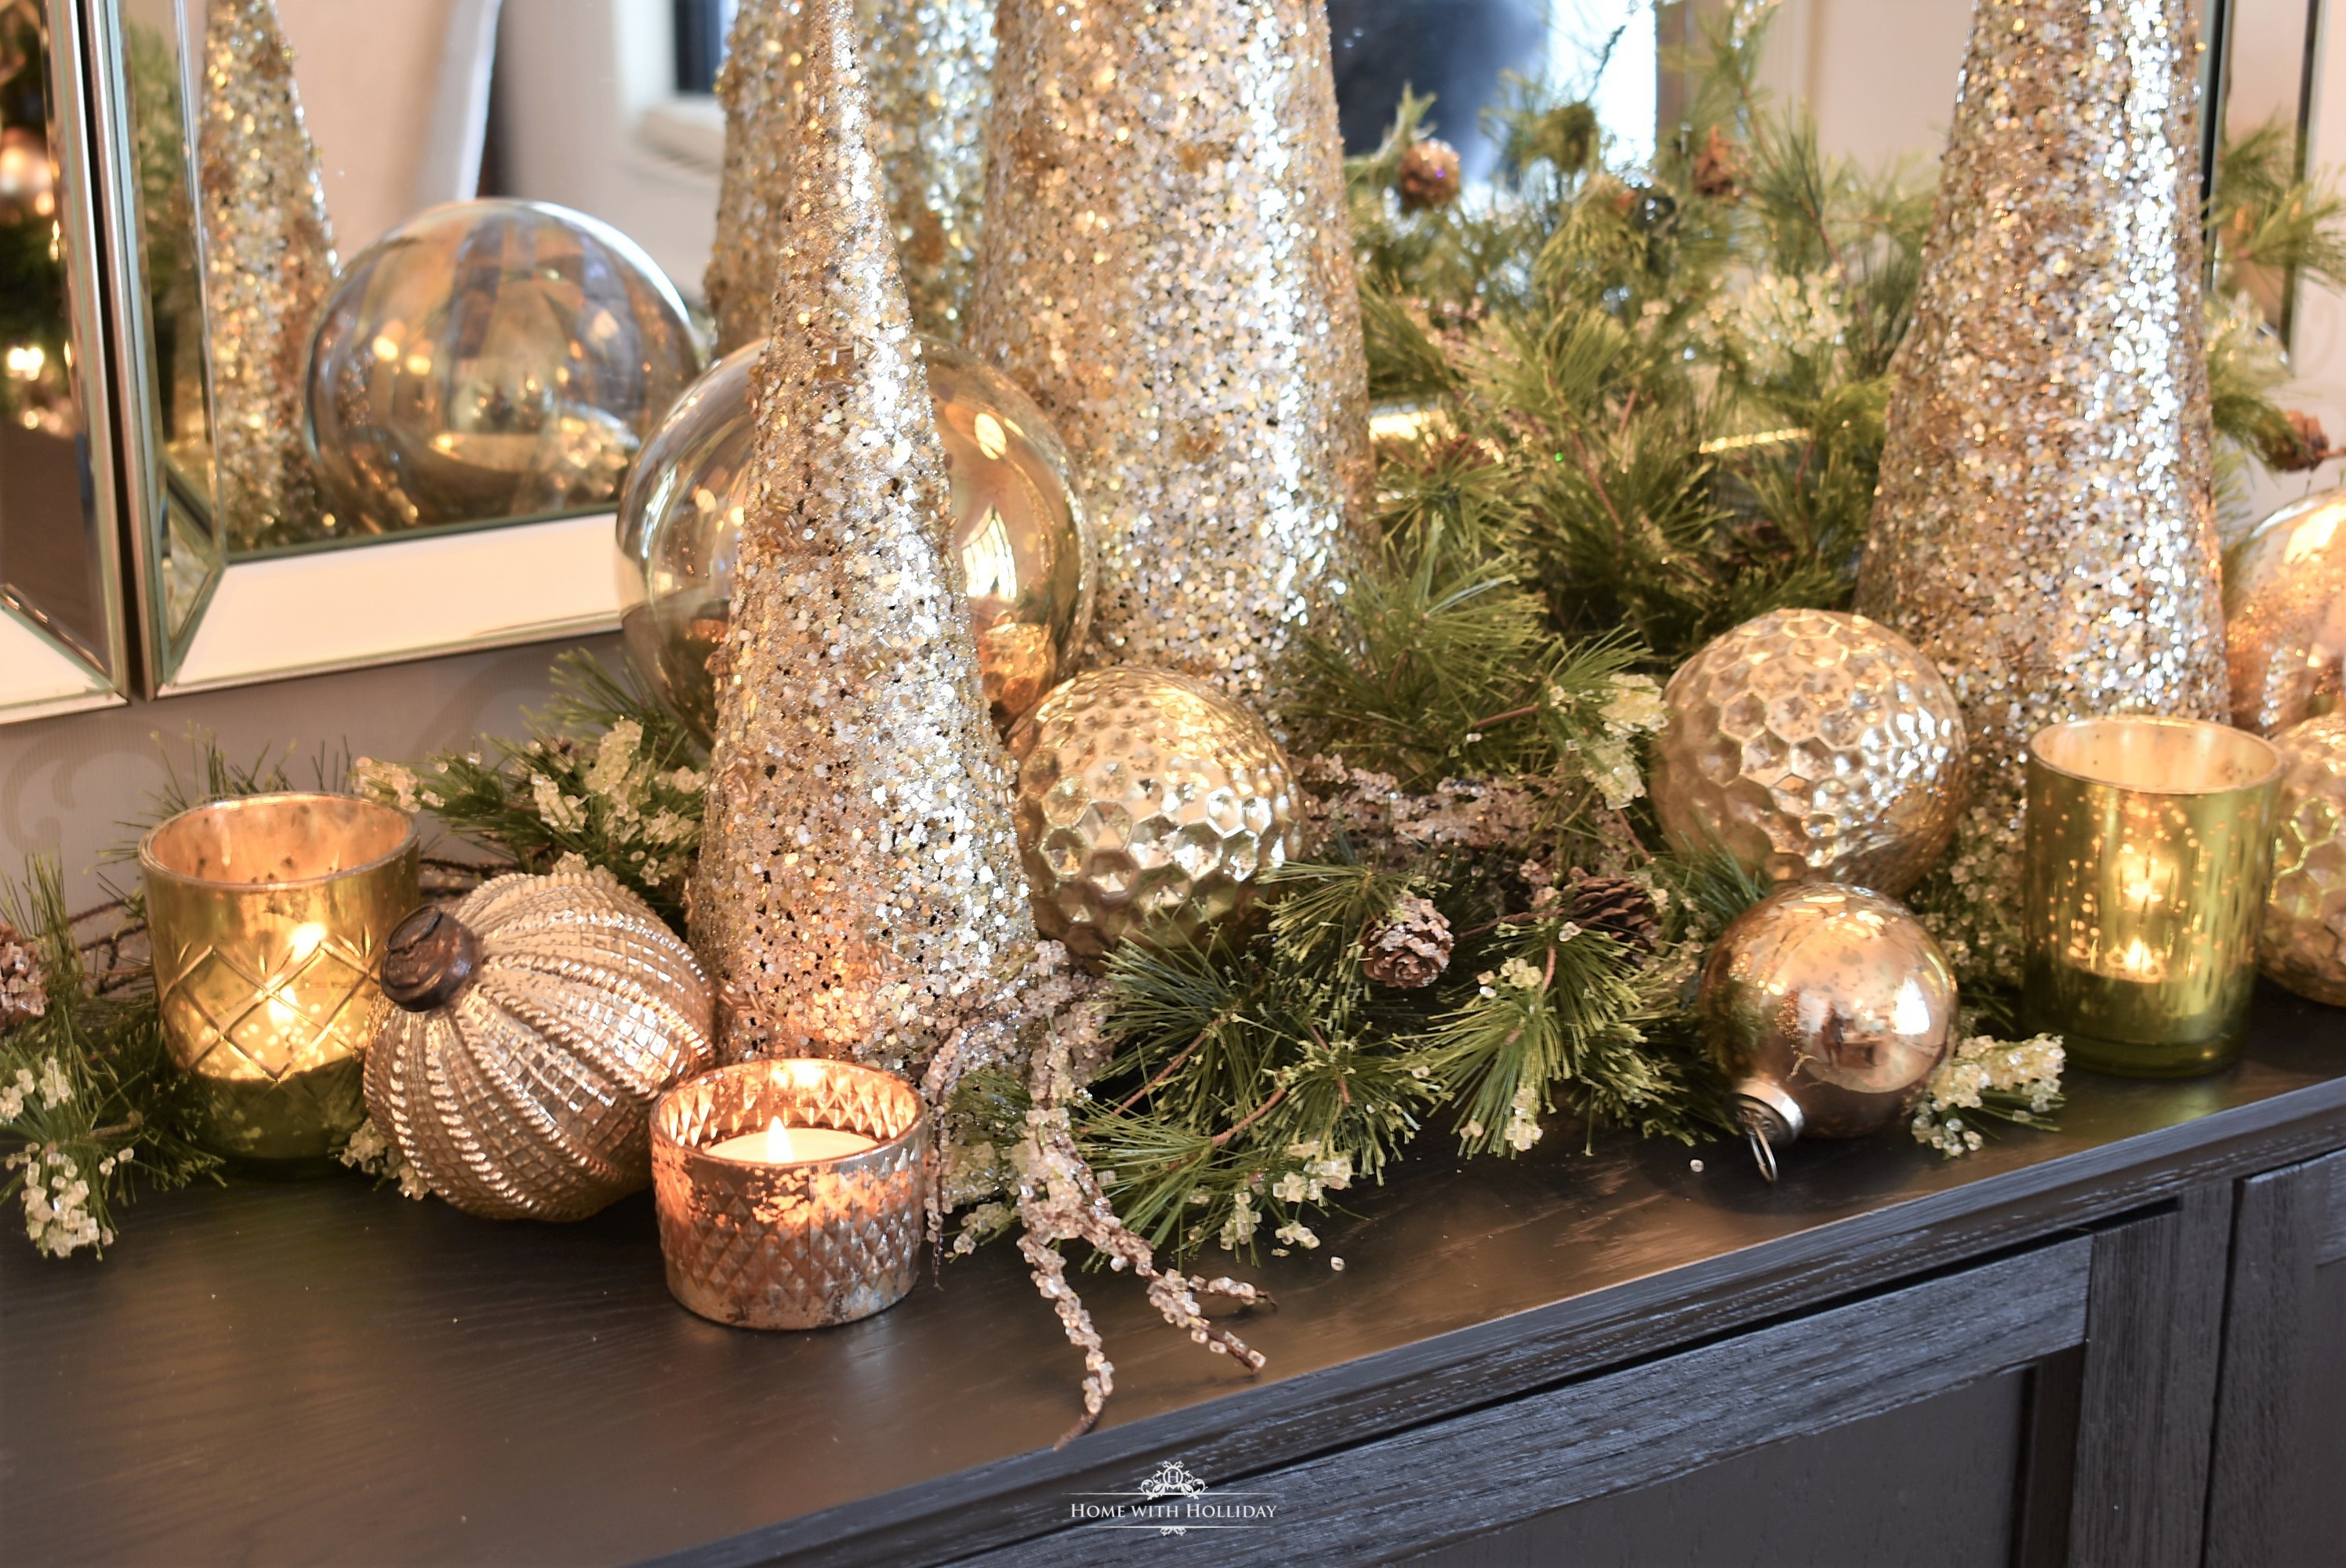 Silver and Gold Glam Christmas Centerpiece - Home with Holliday